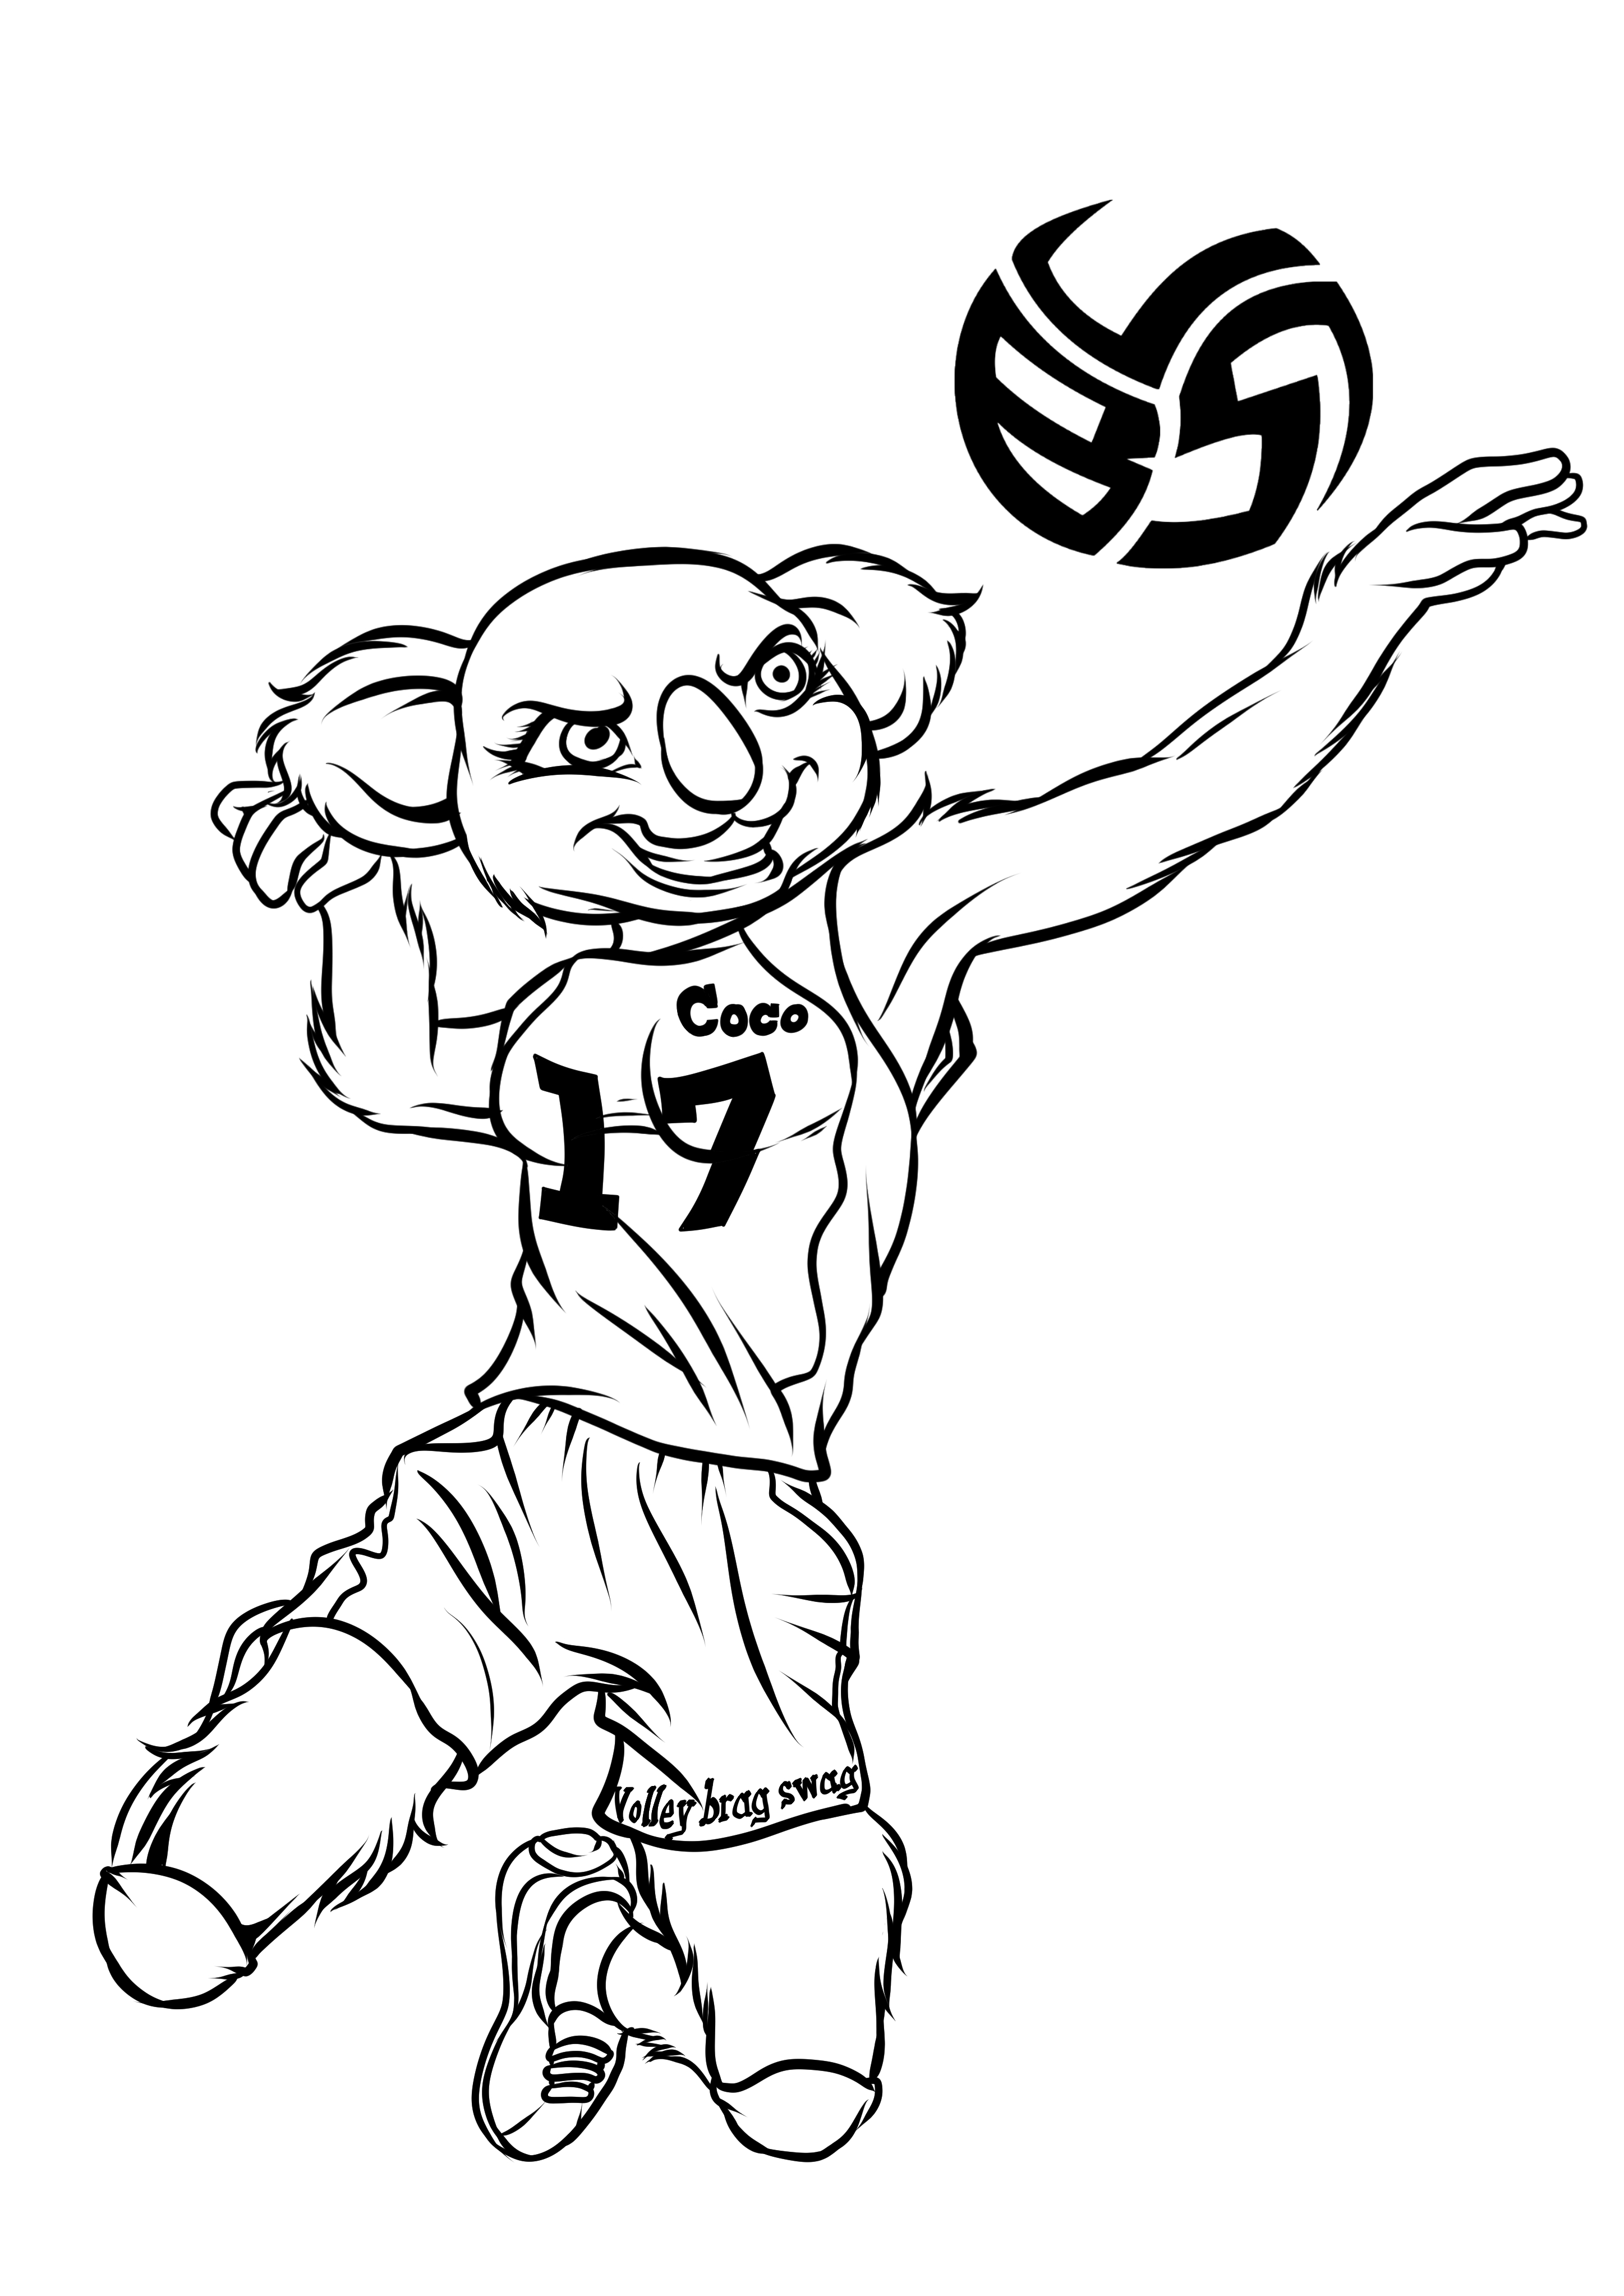 Volleybragswag Coco the Koala coloring pages